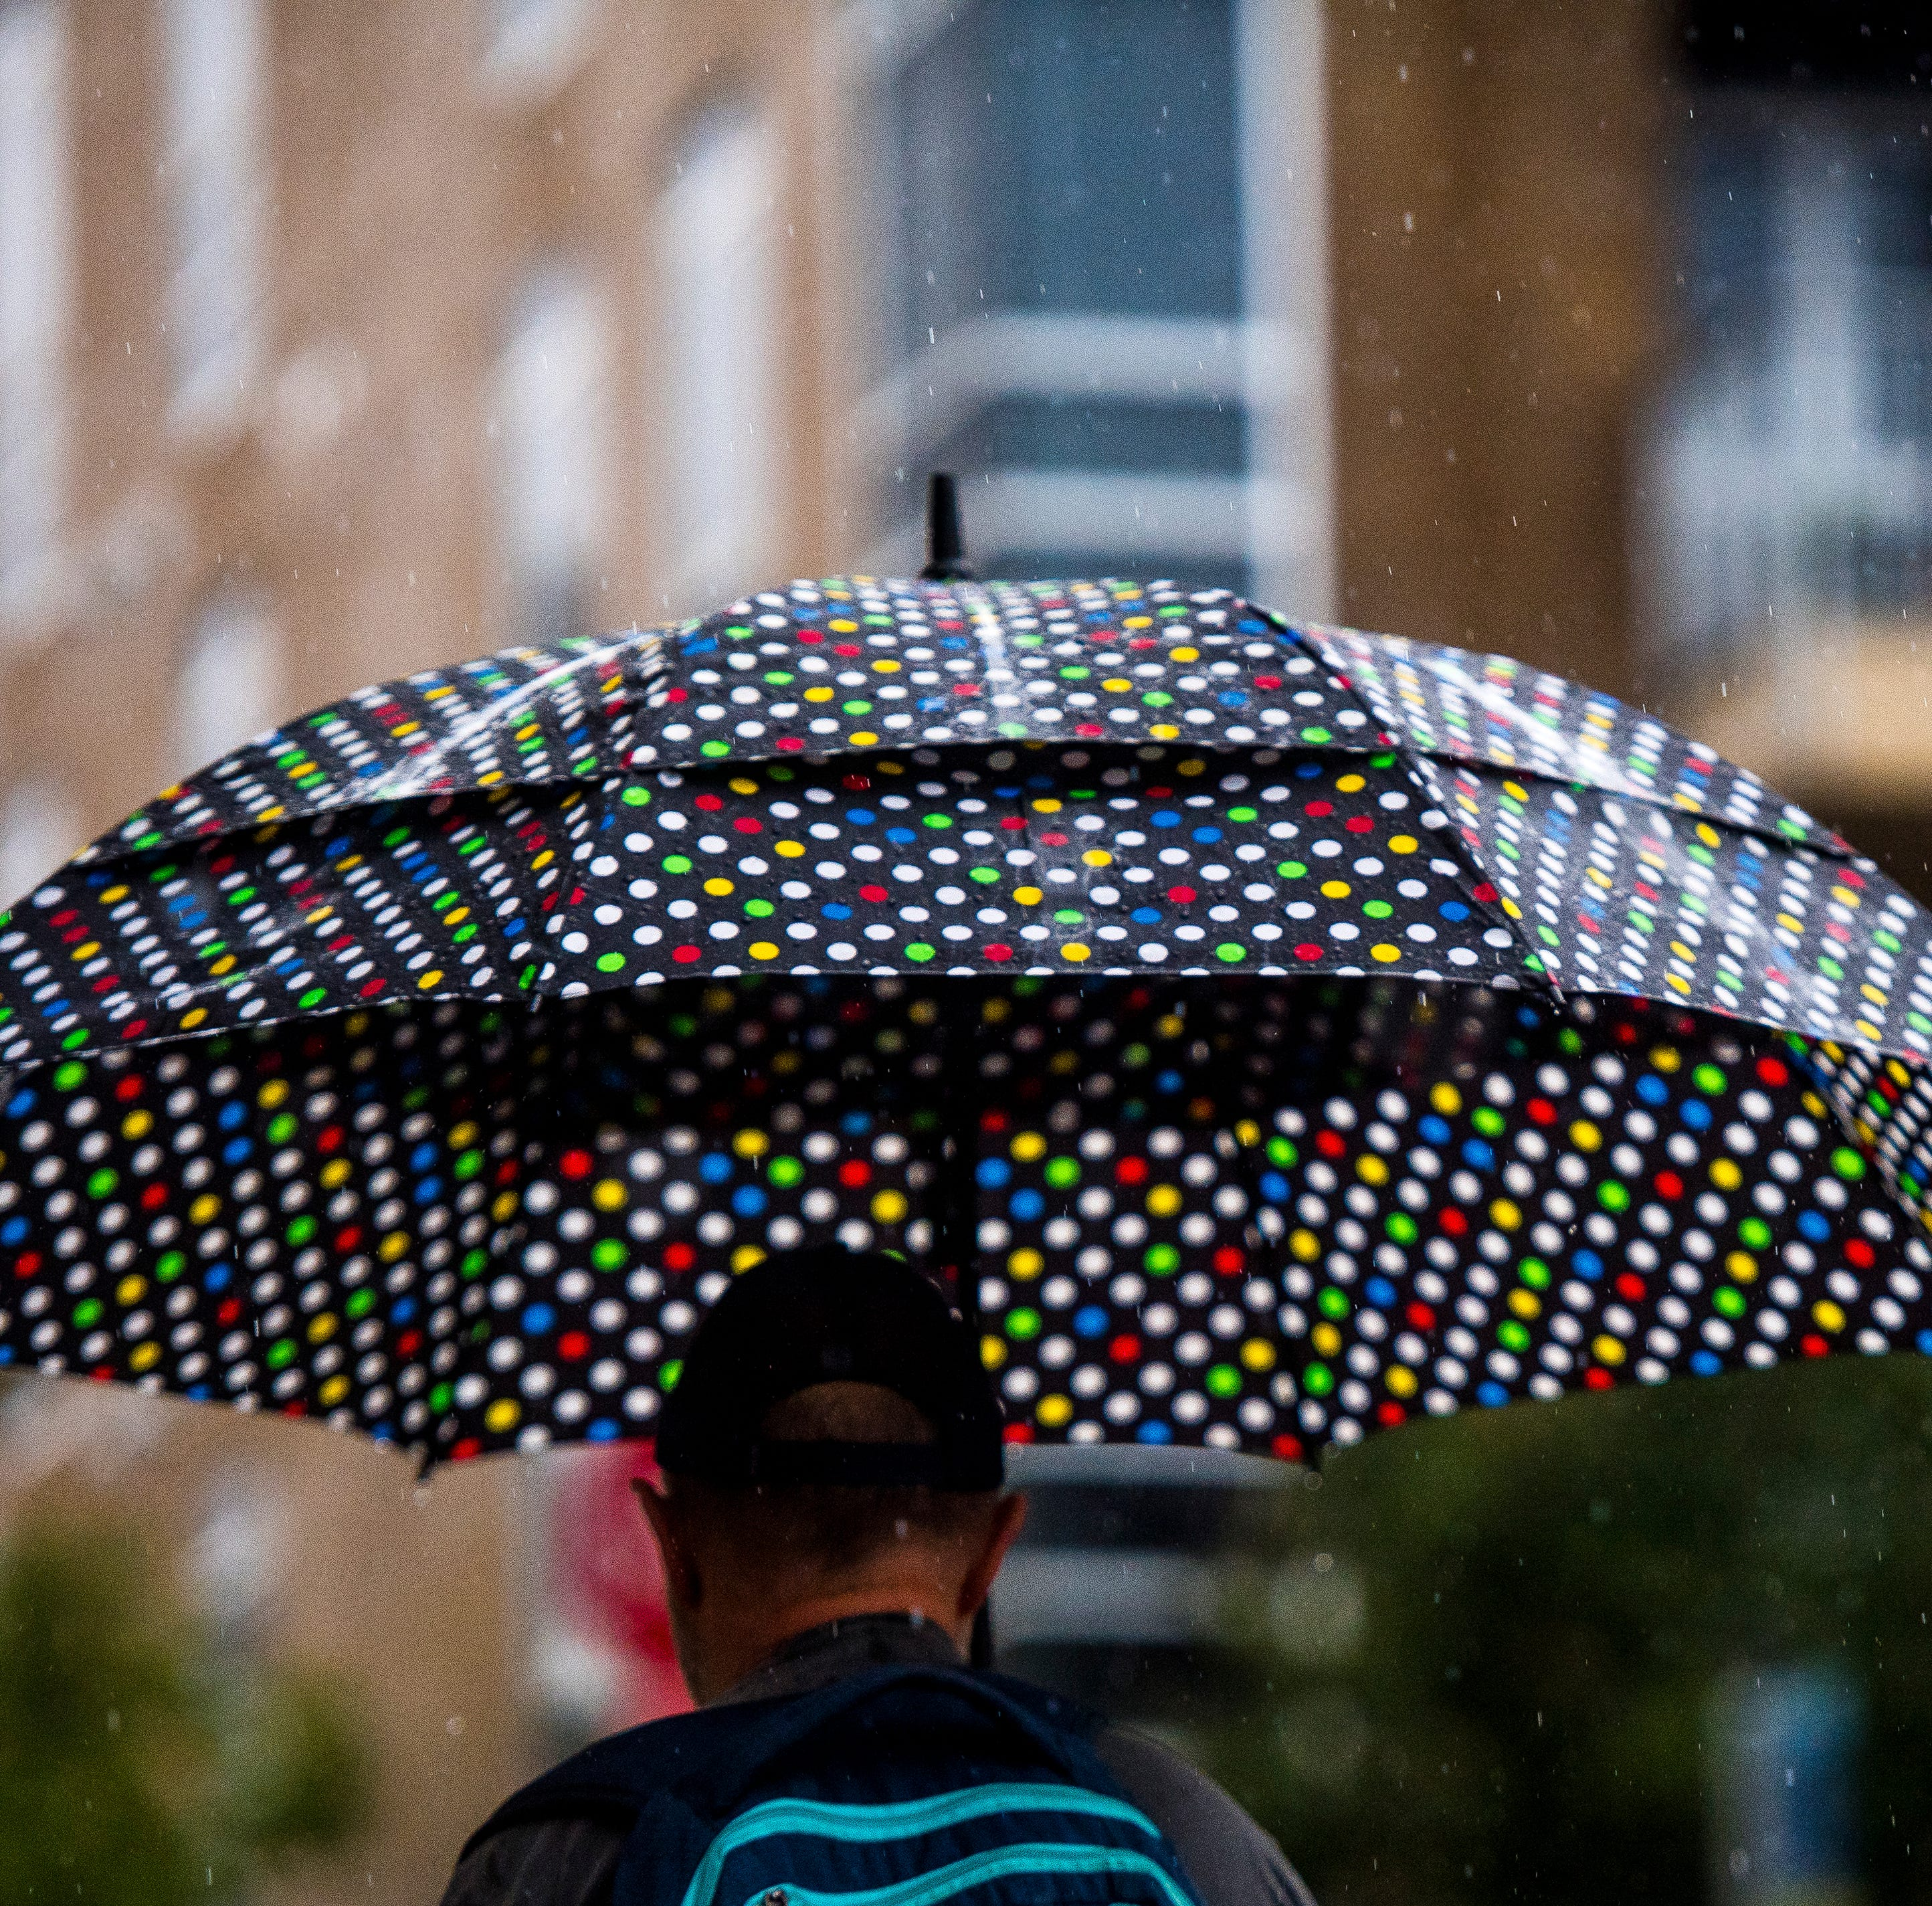 Knoxville remains under Flash Flood Watch into Friday afternoon